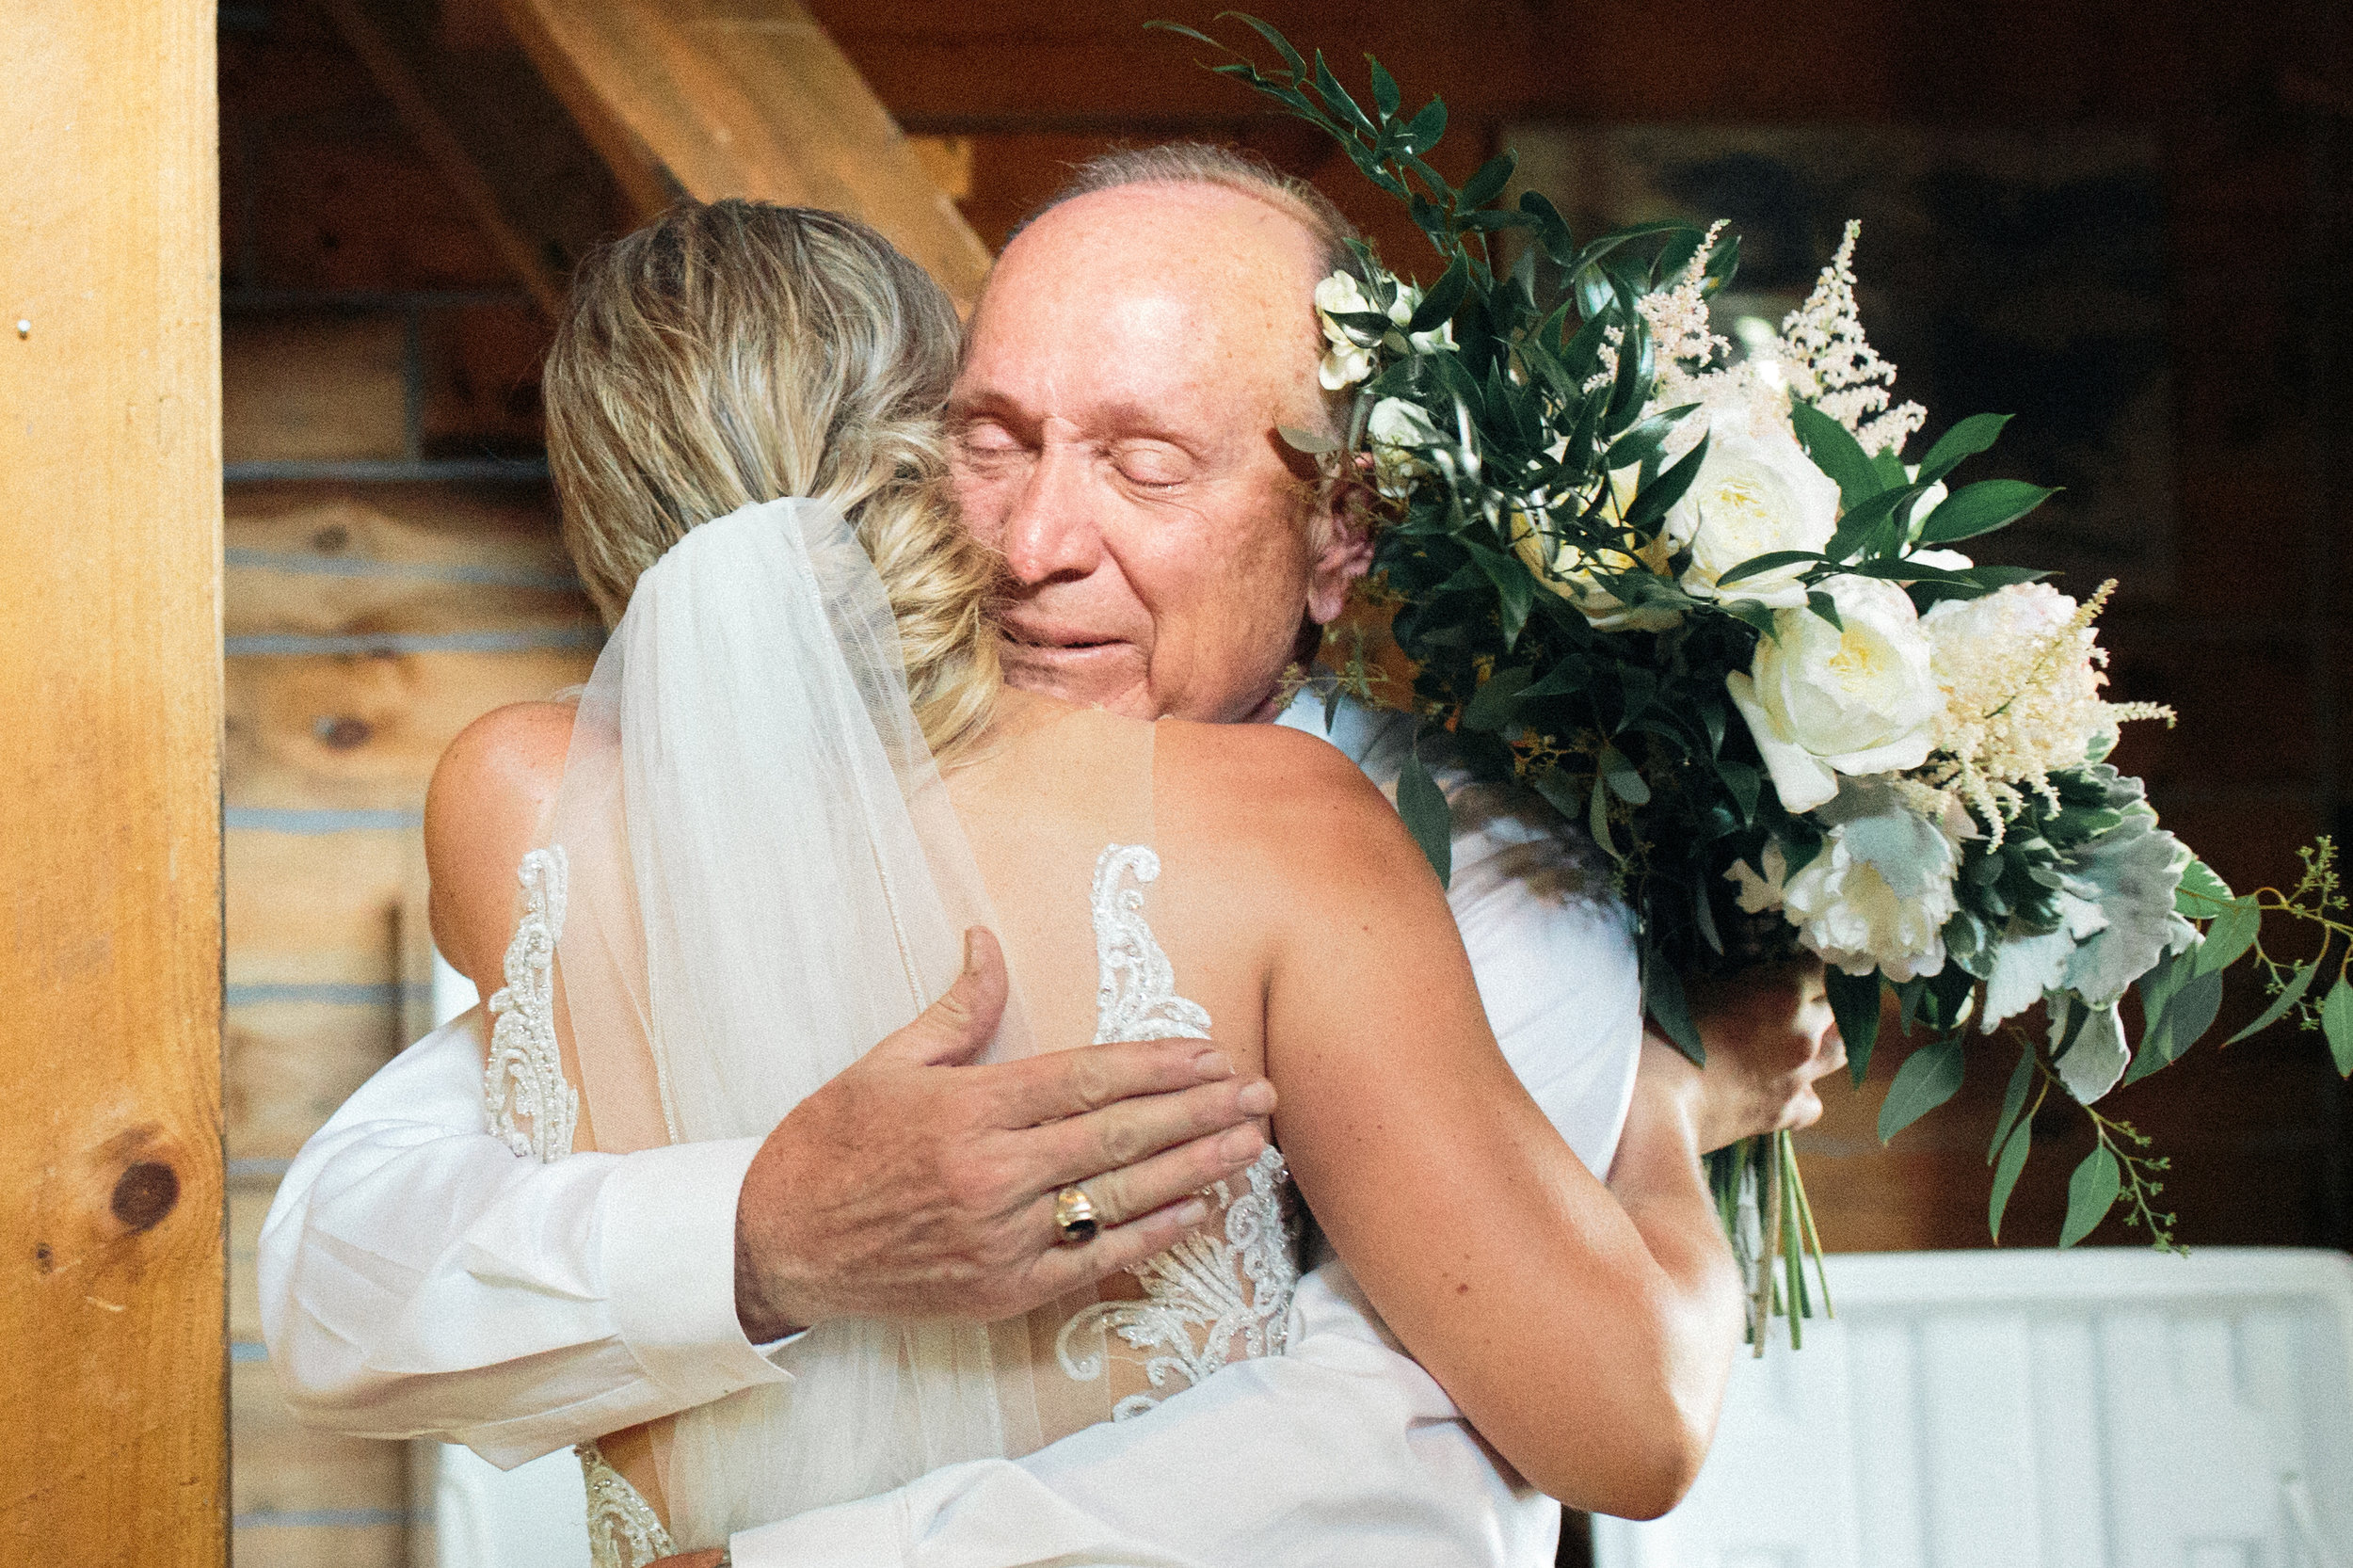 dad hugging daughter on her wedding day